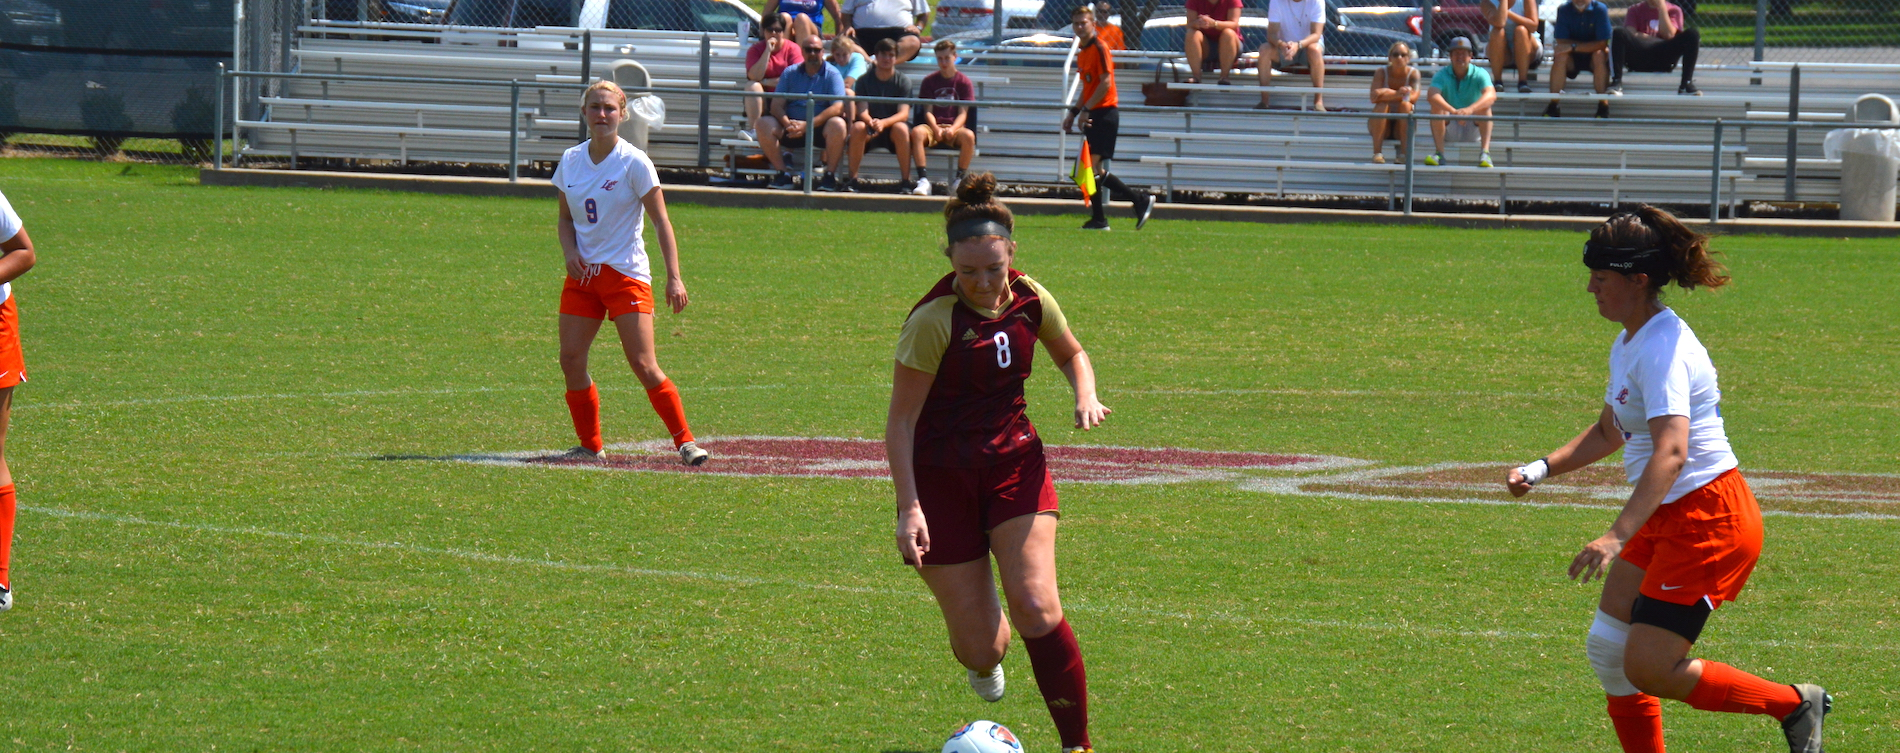 Women's Soccer Improves to 2-0